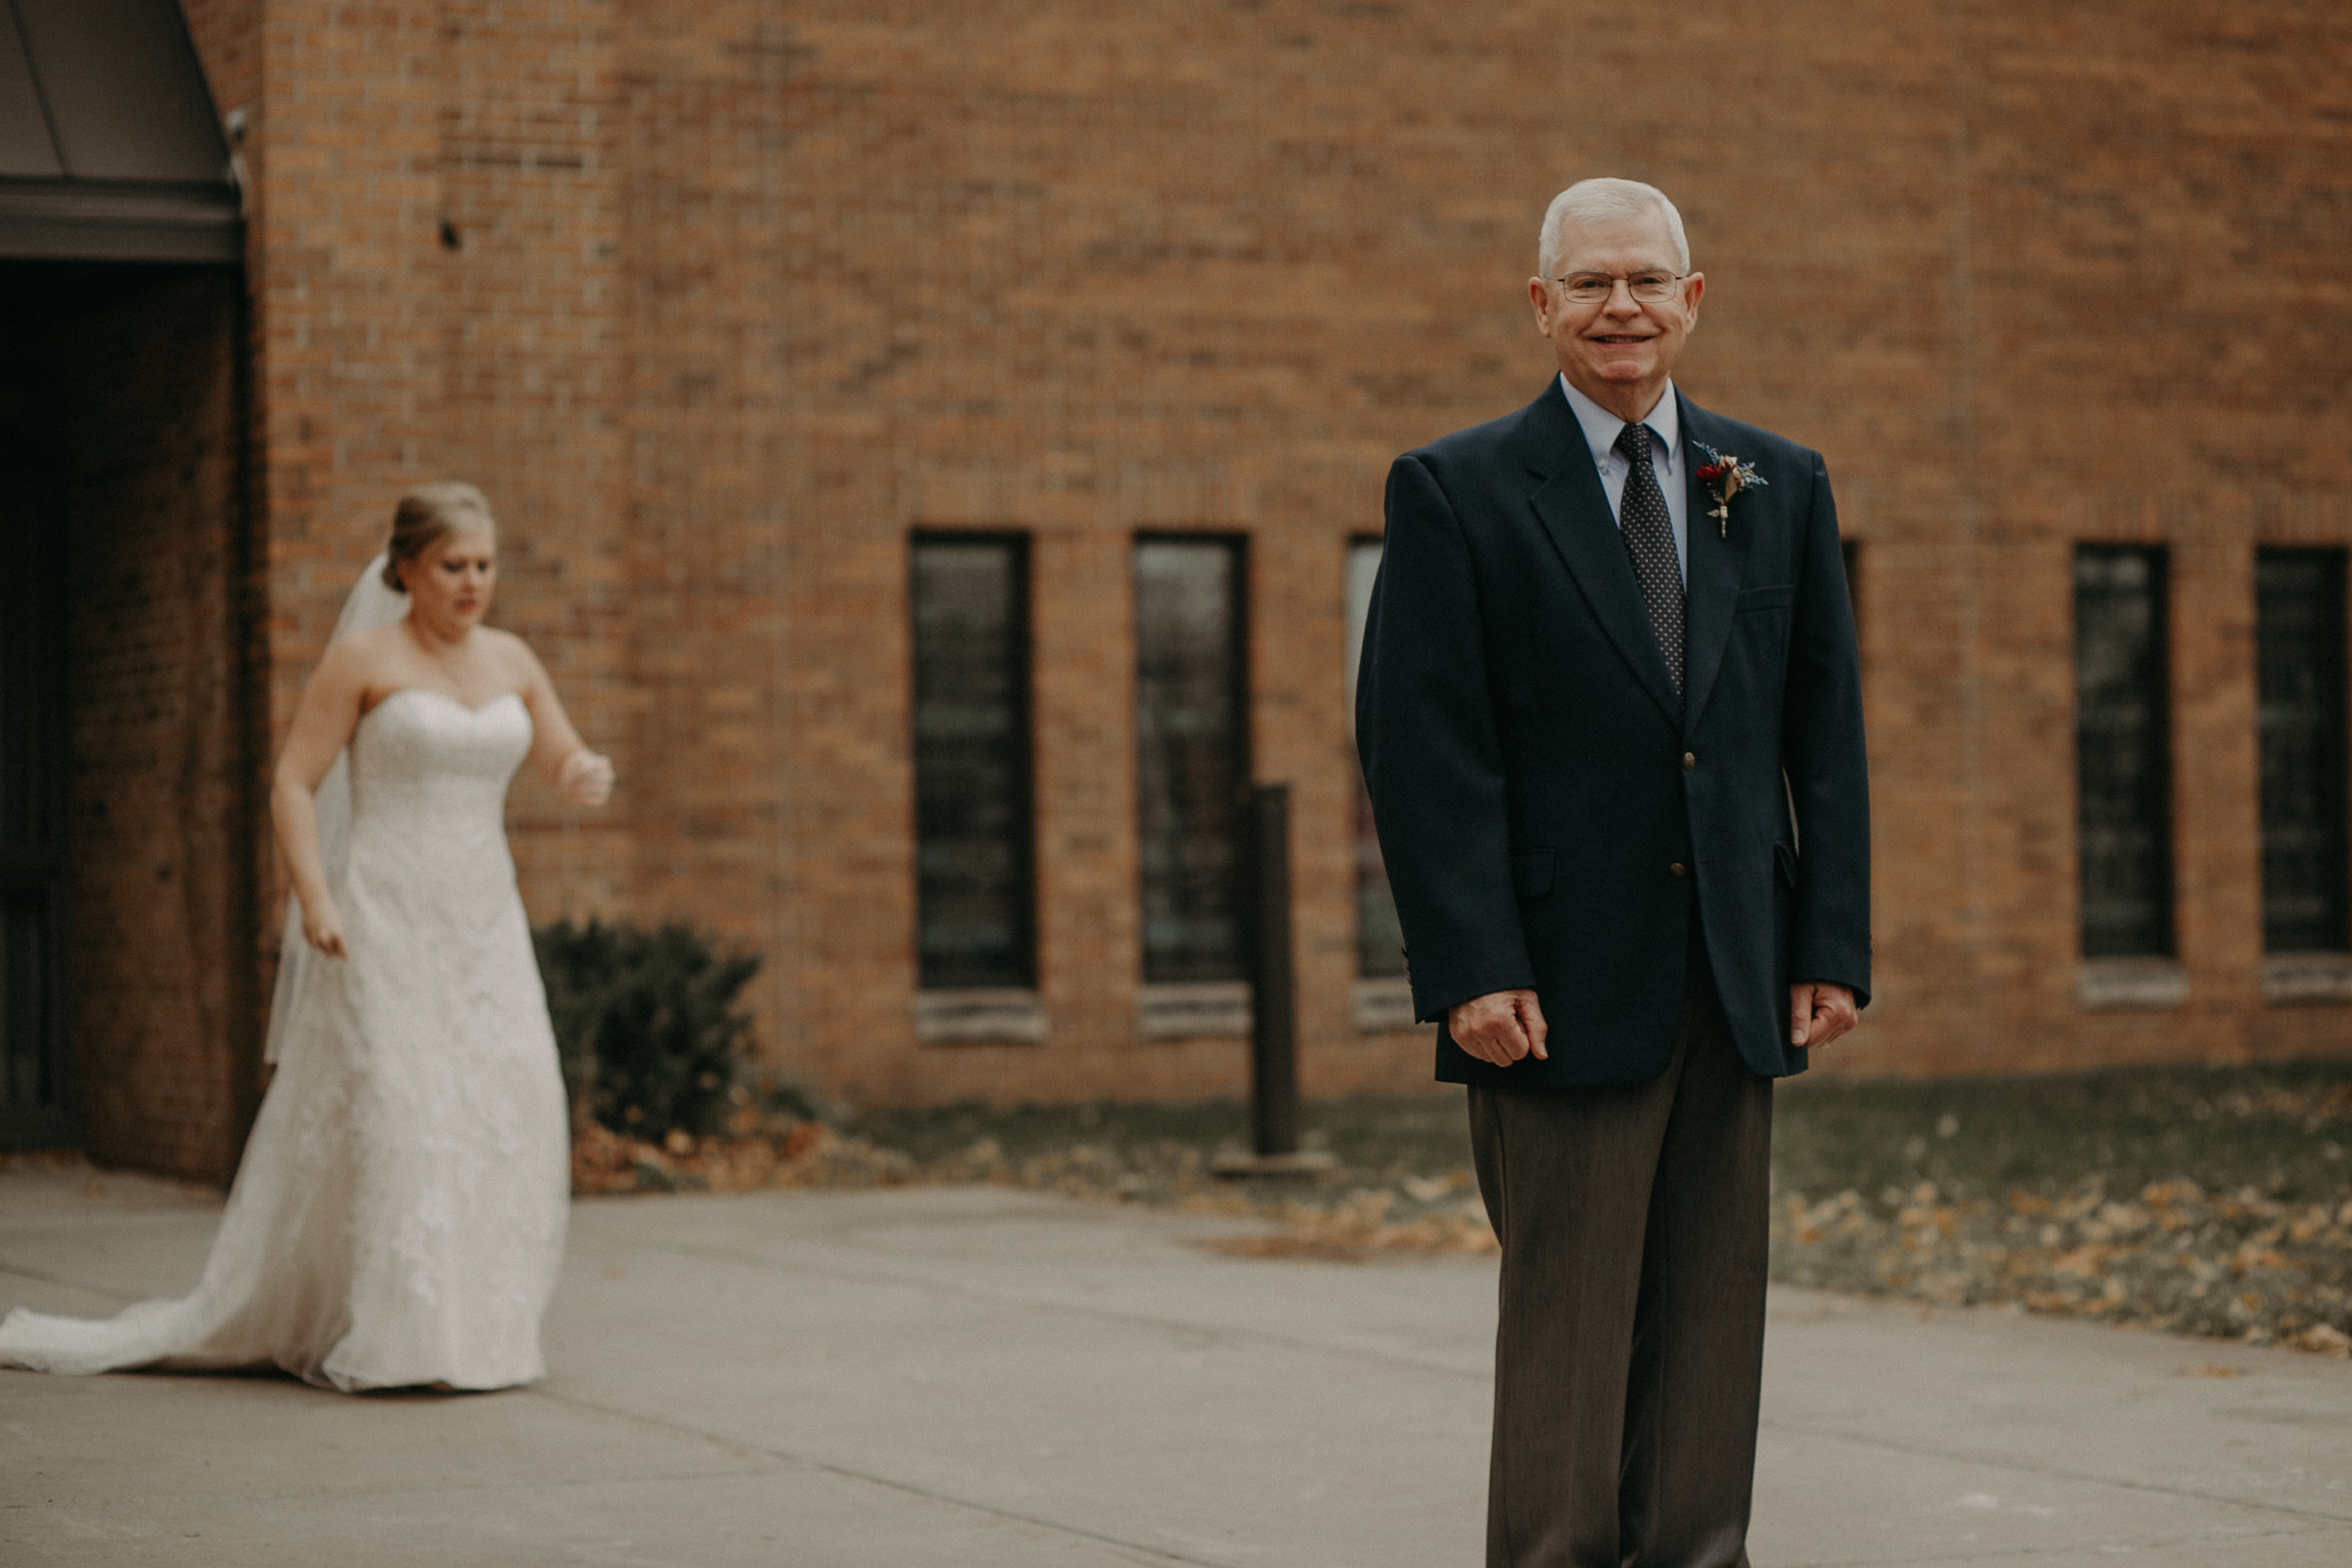 emotional first look between a bride and her grandfather at St Bridgets Church in River Falls WI